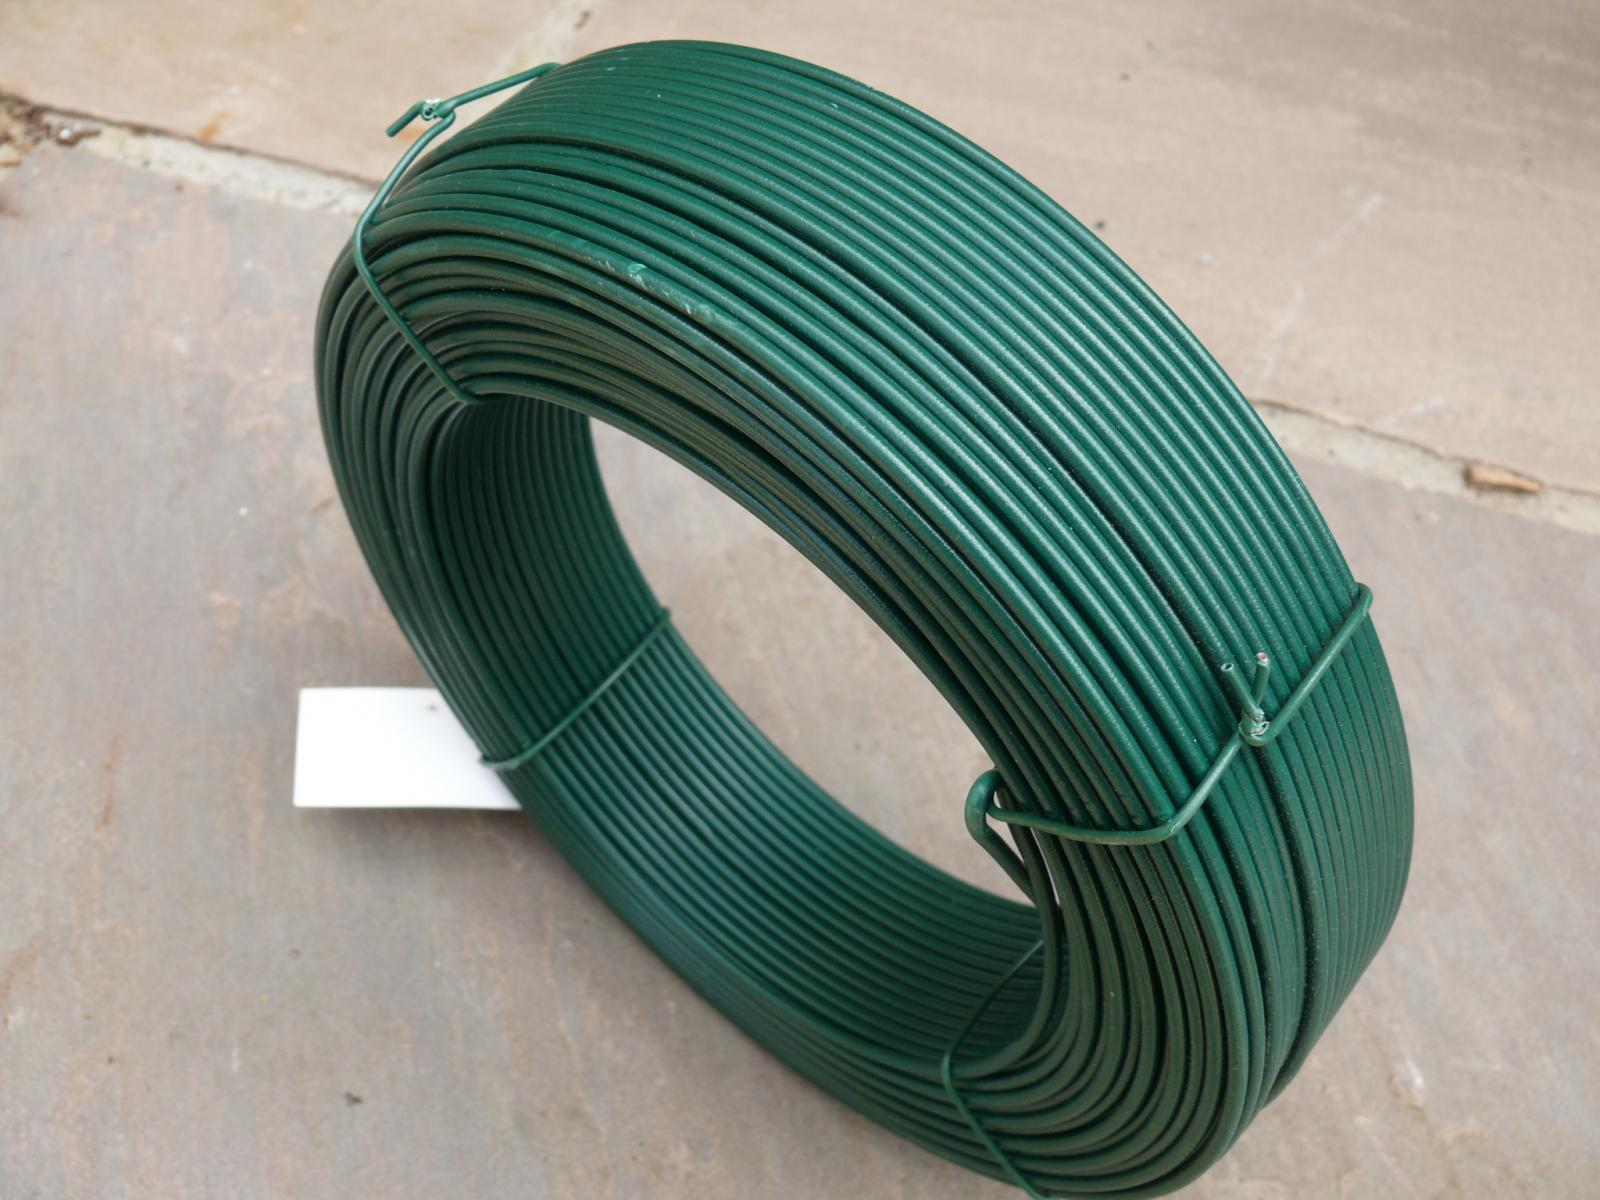 Pvc Coated Wire : Fencing straining wire green pvc tensioning line